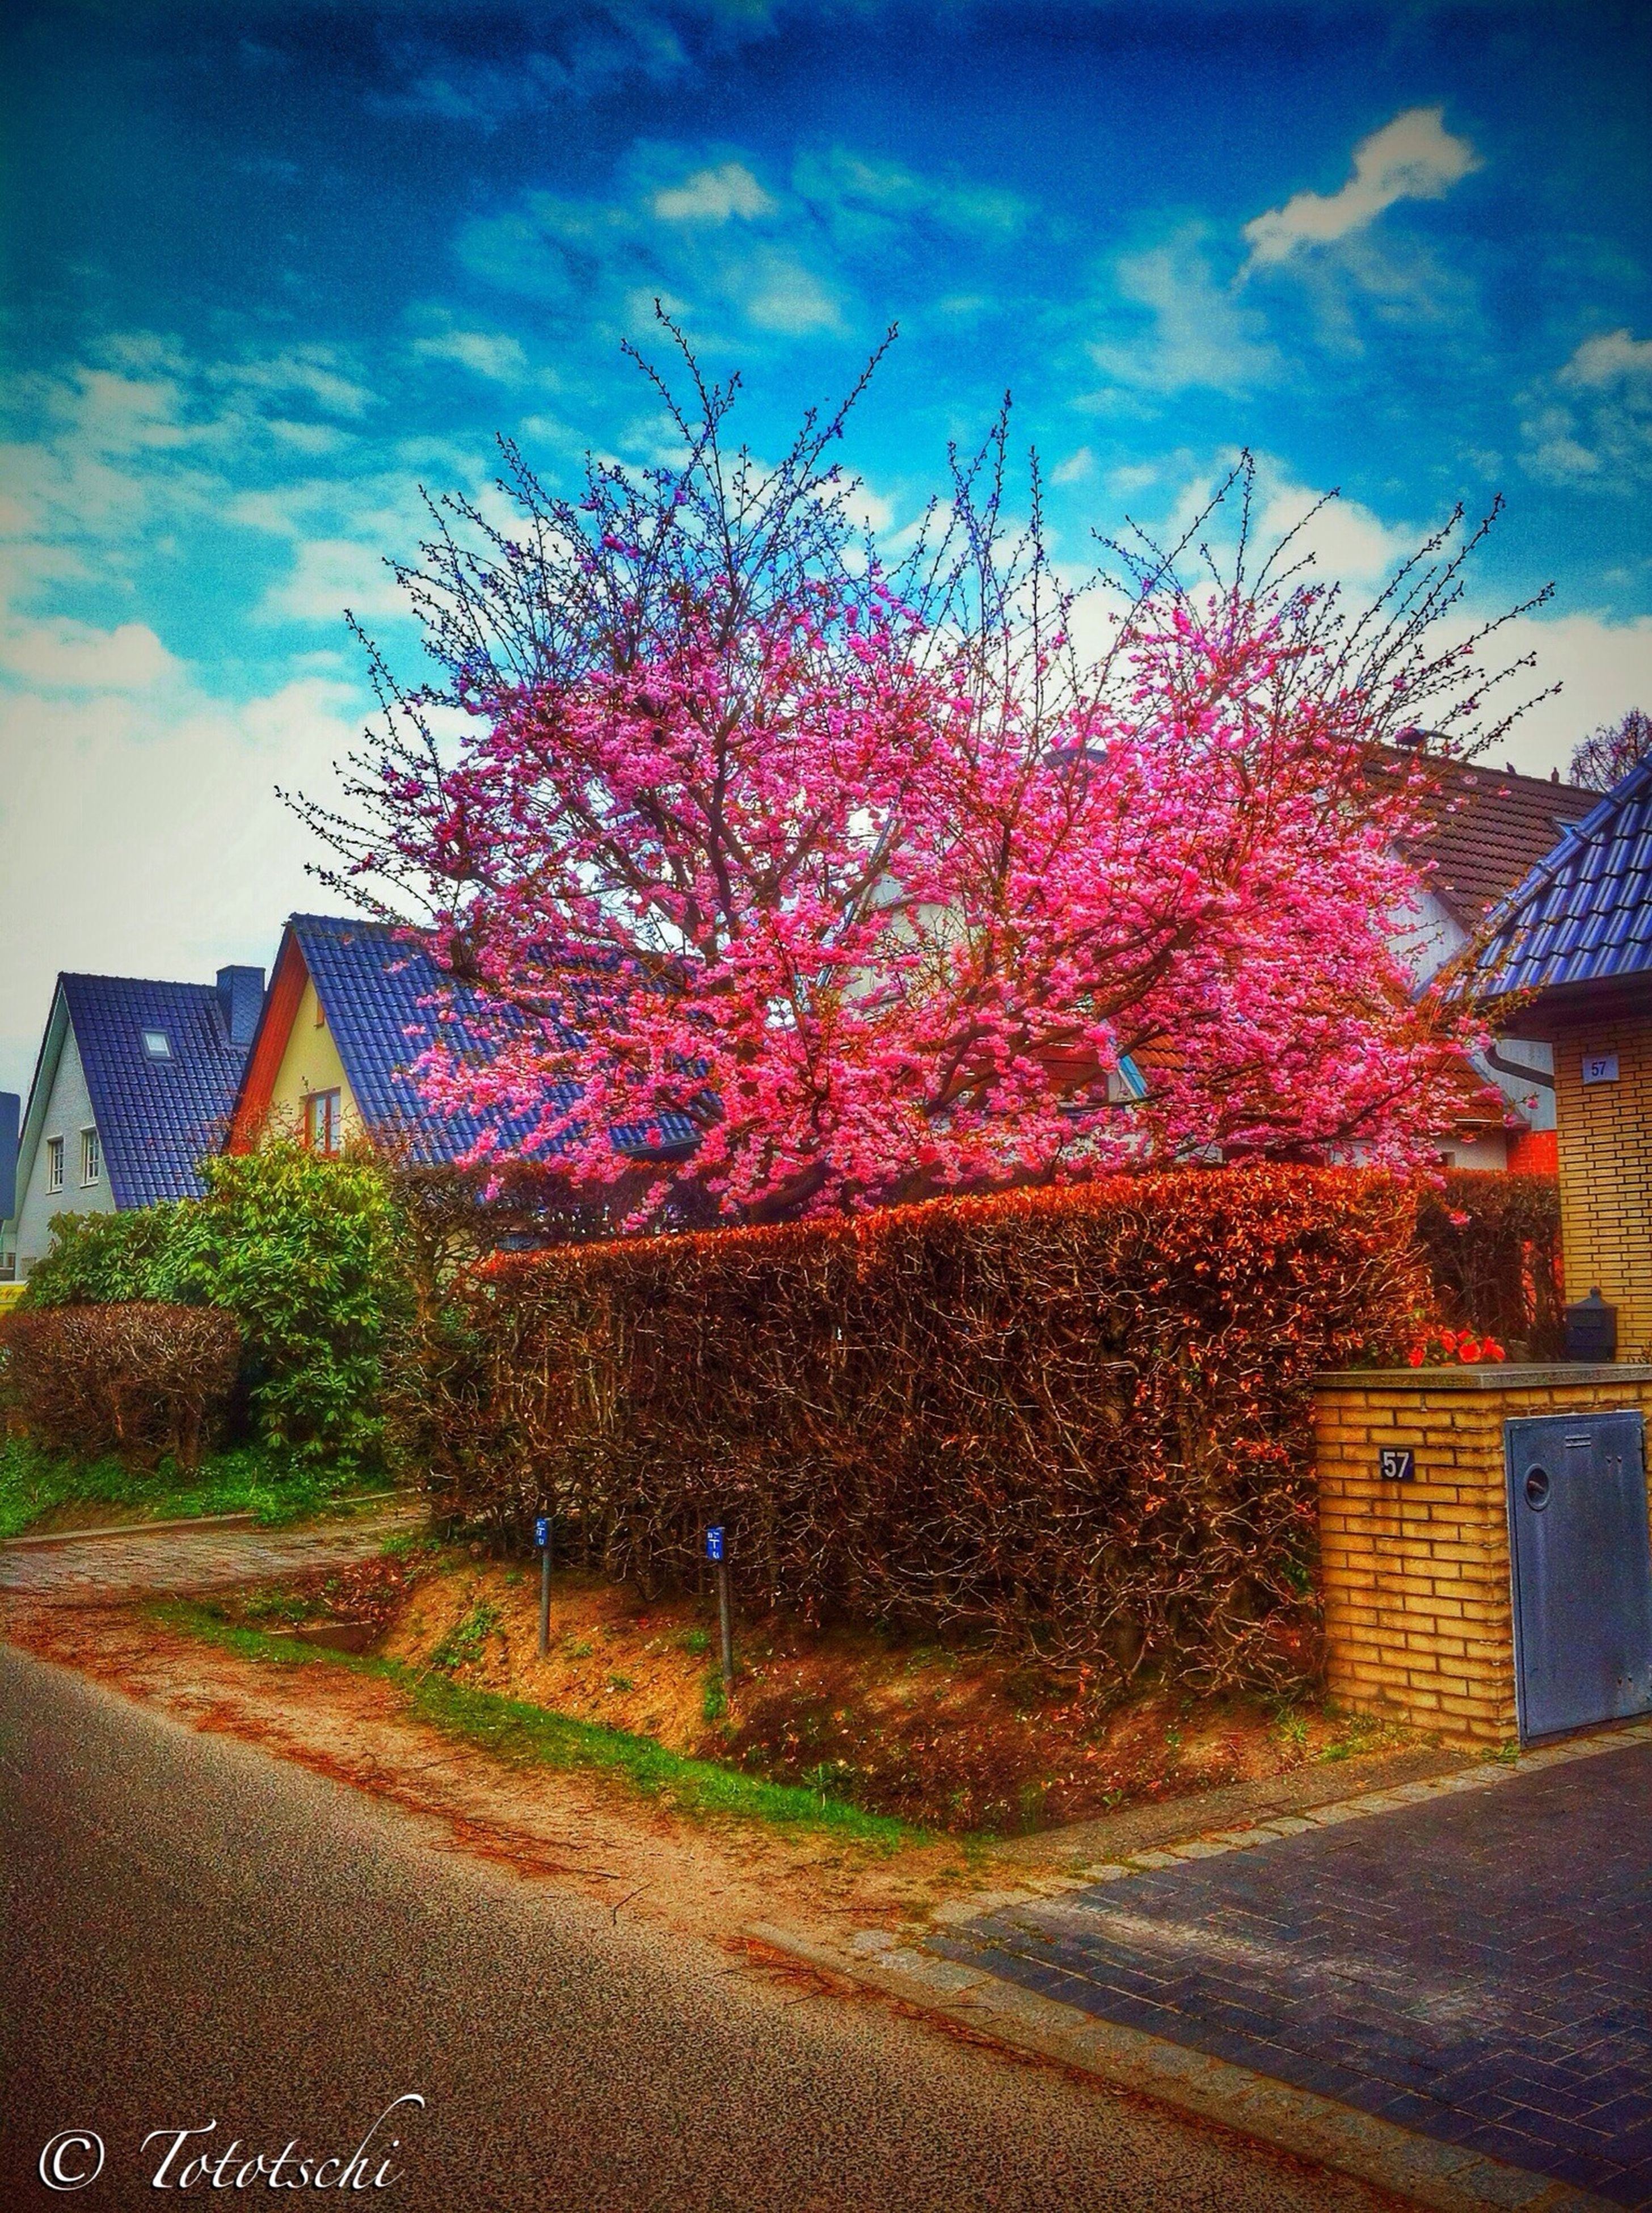 building exterior, sky, road, built structure, architecture, tree, street, pink color, transportation, the way forward, house, flower, outdoors, cloud - sky, road marking, city, no people, day, nature, diminishing perspective